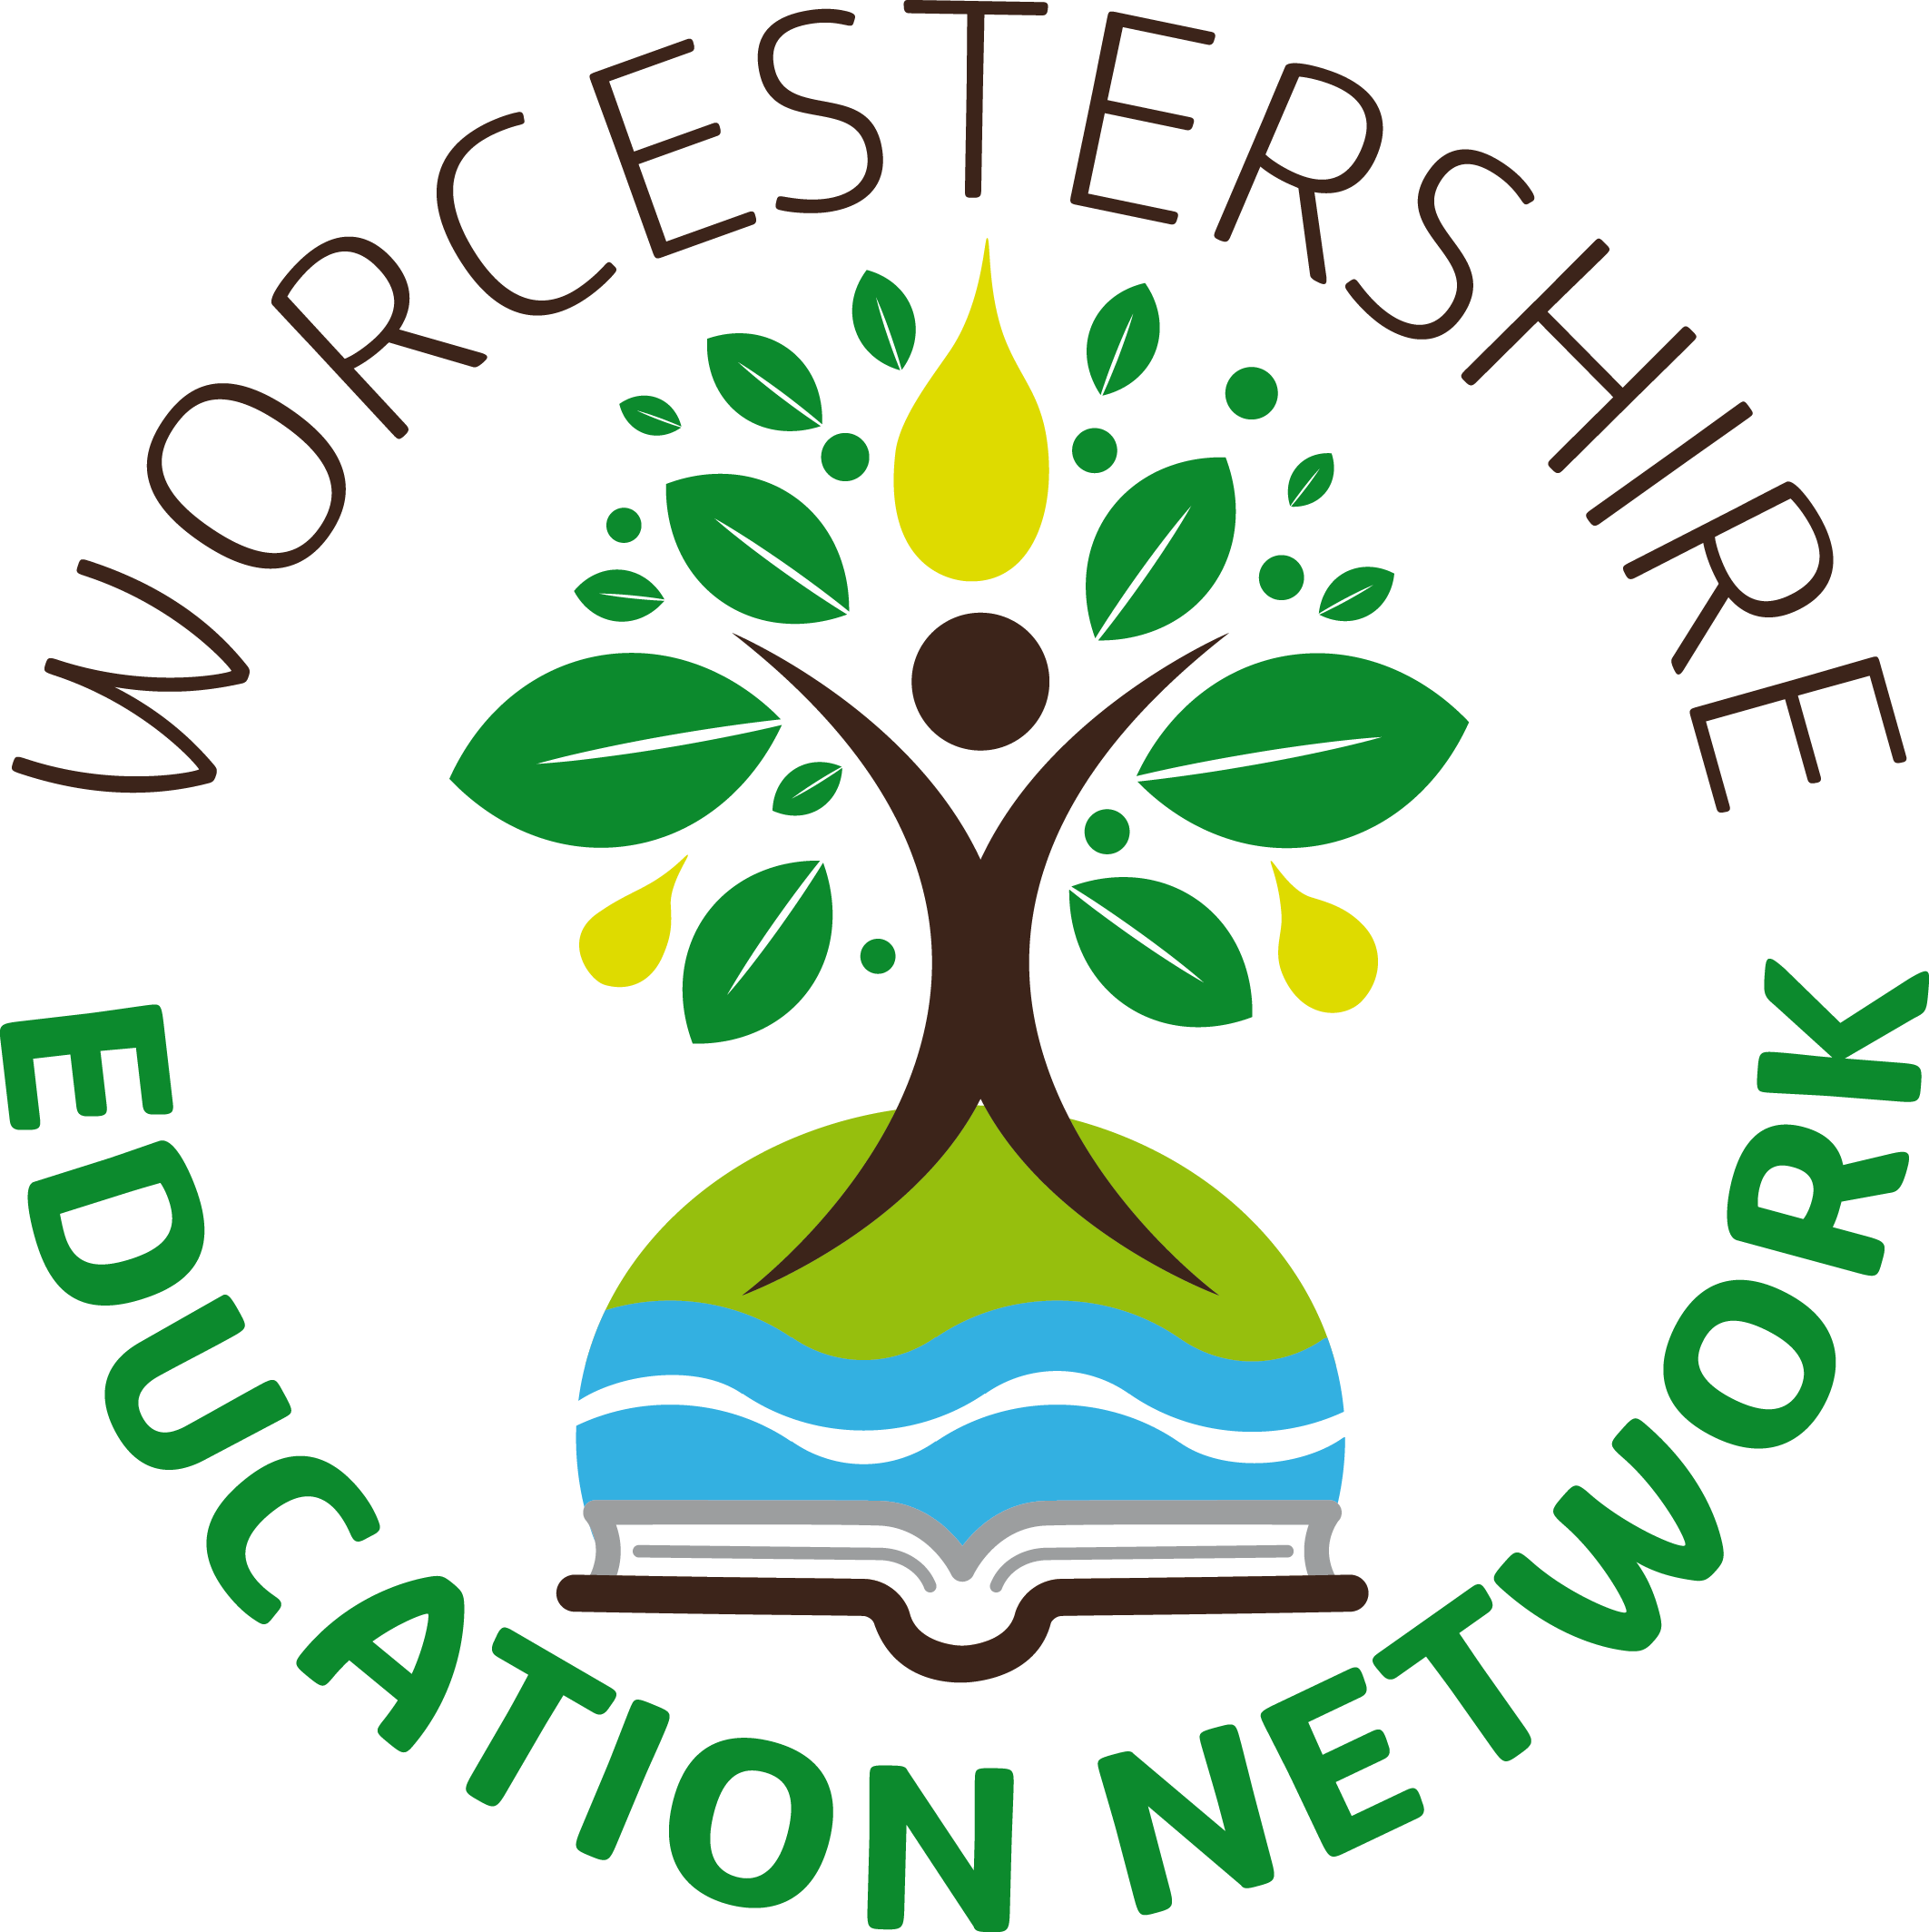 a member of the Worcestershire Education Network logo